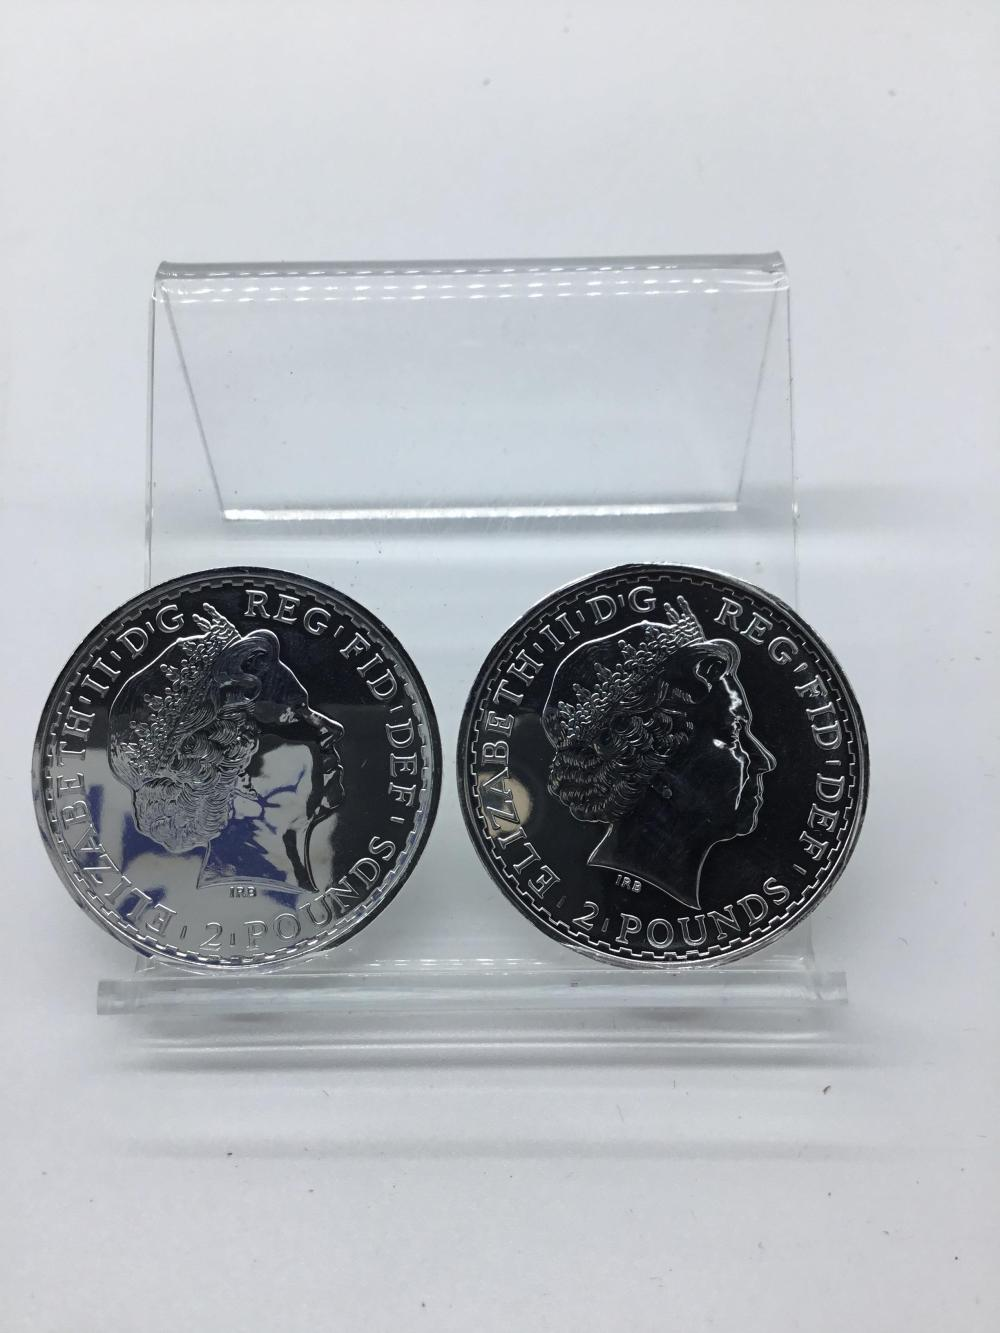 2013 2 British pounds silver coins